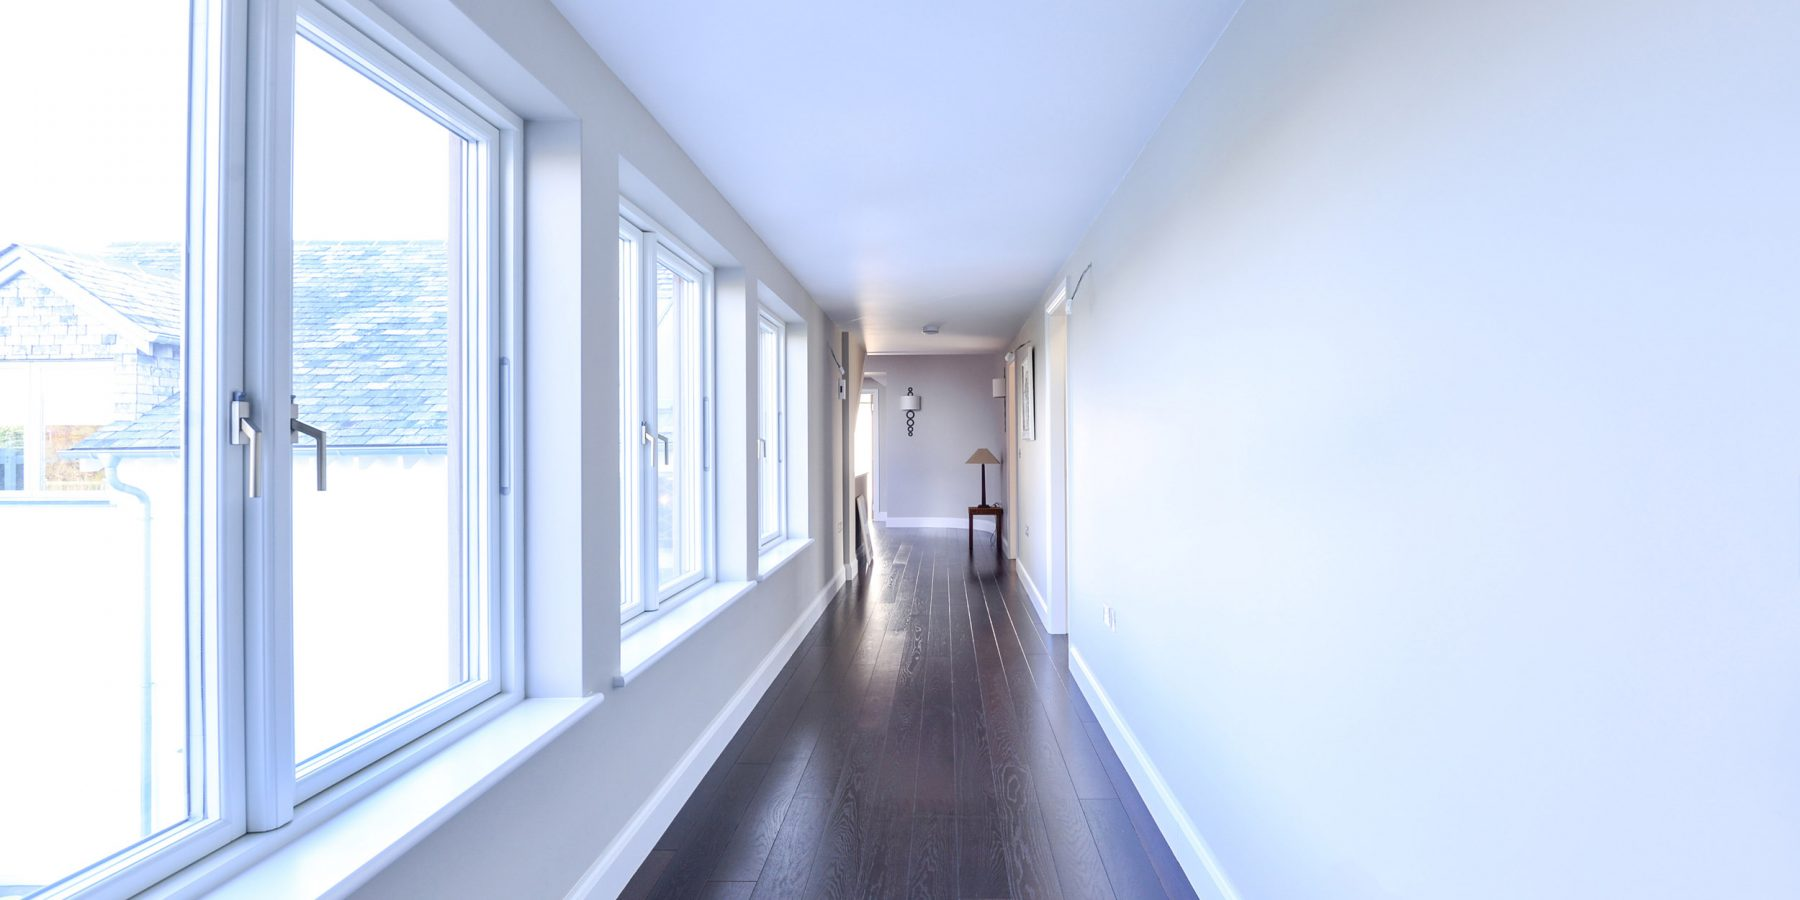 Thumbnail of http://White%20hallway%20with%20windows%20and%20dark%20wood%20floor